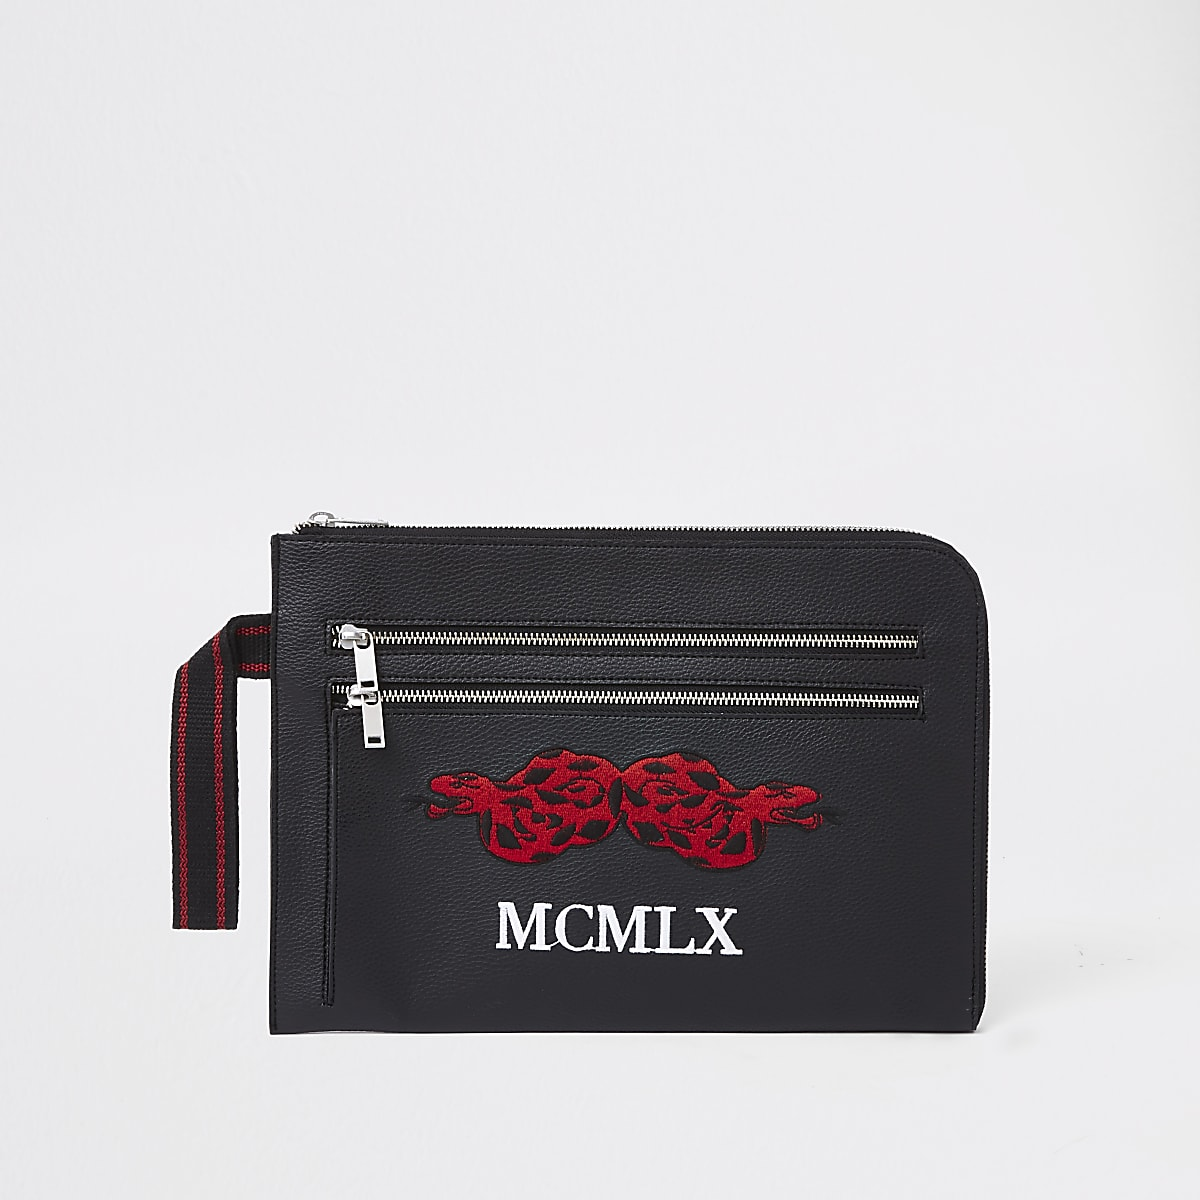 Black' MCMLX' snake embroidered portfolio bag